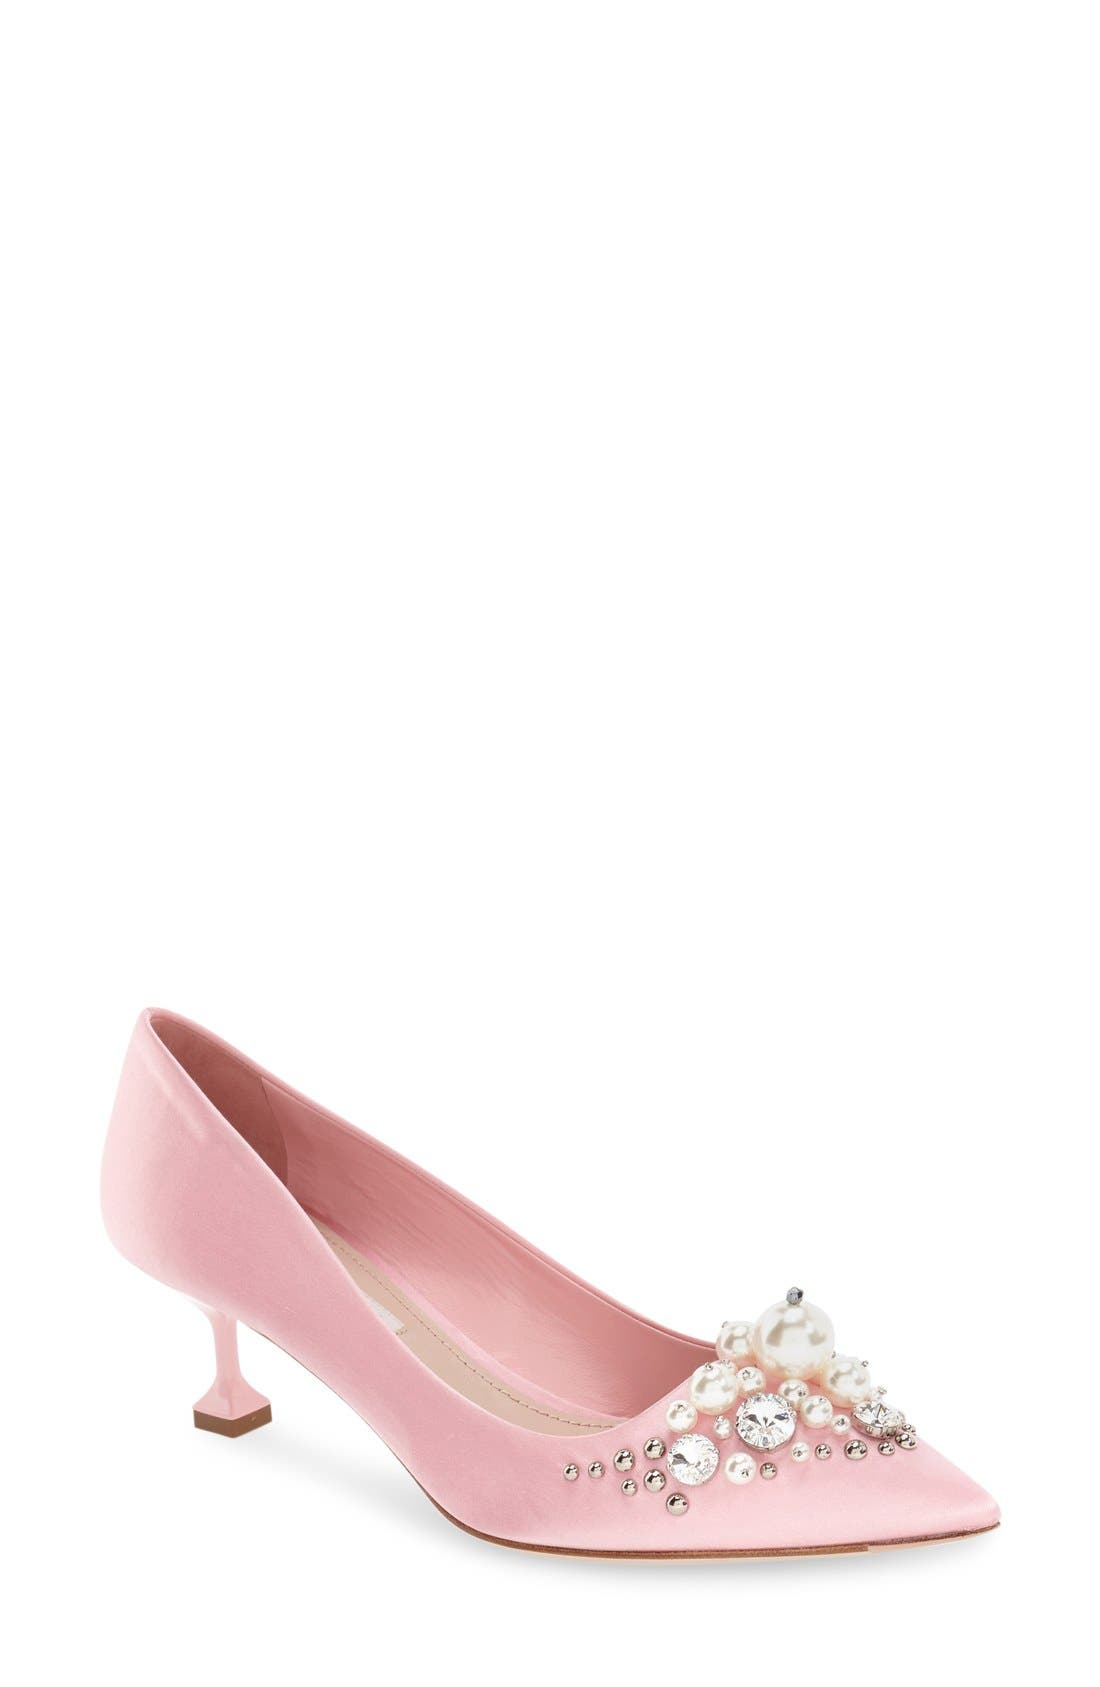 MIU MIU Embellished Pointy Toe Pump